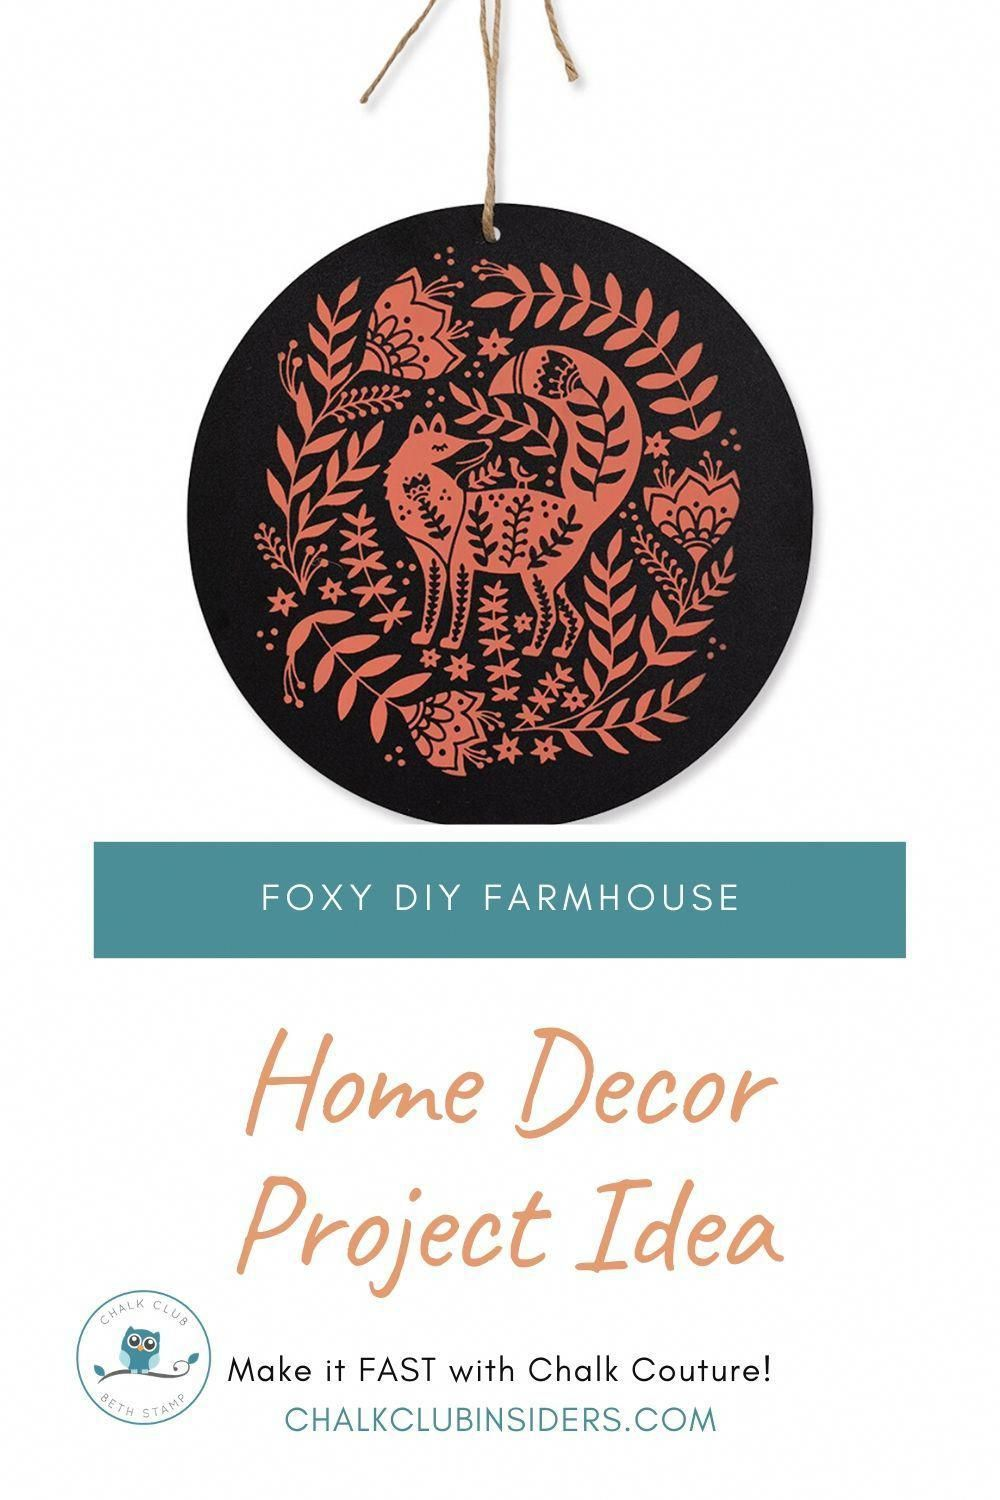 Fun and foxy DIY farmhouse home decor project. Make this homemade project idea using Chalk Couture transfers. Decorating your house with this simple and easy to make home decor is fun with the Chalk Club! #chalkcouture #homedecor #craftproject #diycrafts #farmhousedecor #diydecor #diydecorating #walldecor #homedecordiy